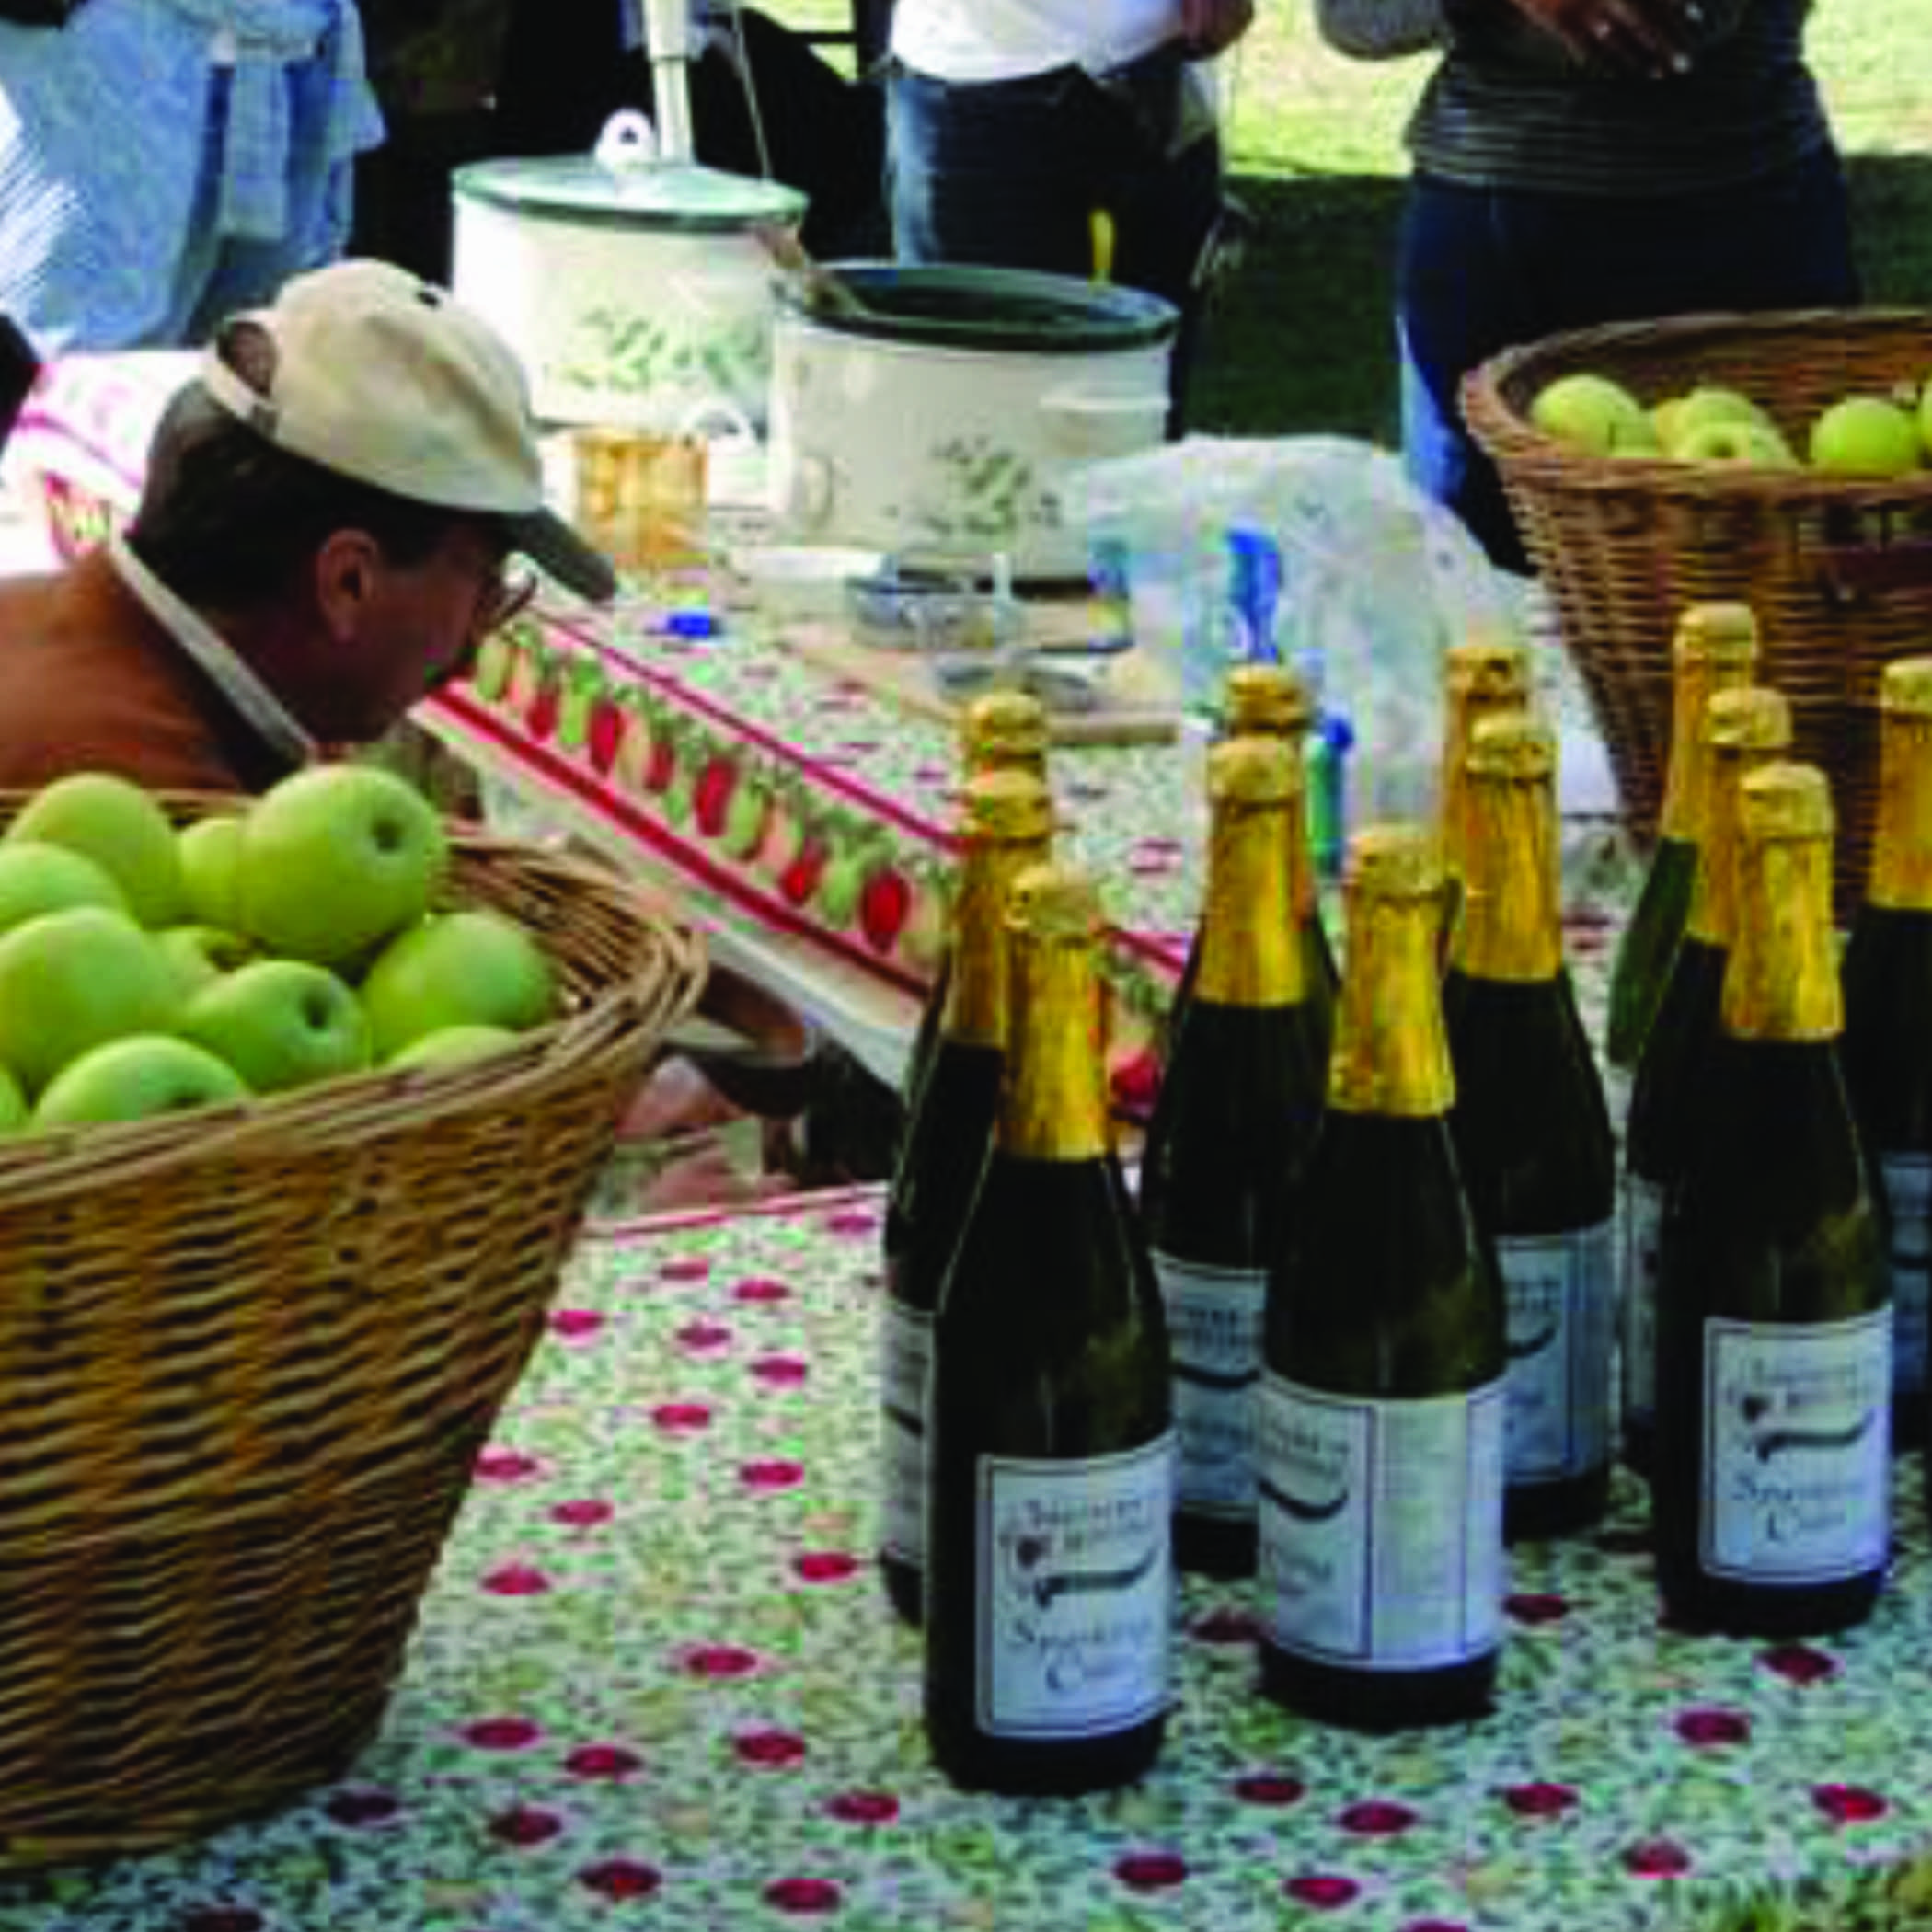 a vendor's table with a basket of green apples and bottles of sparkling cider